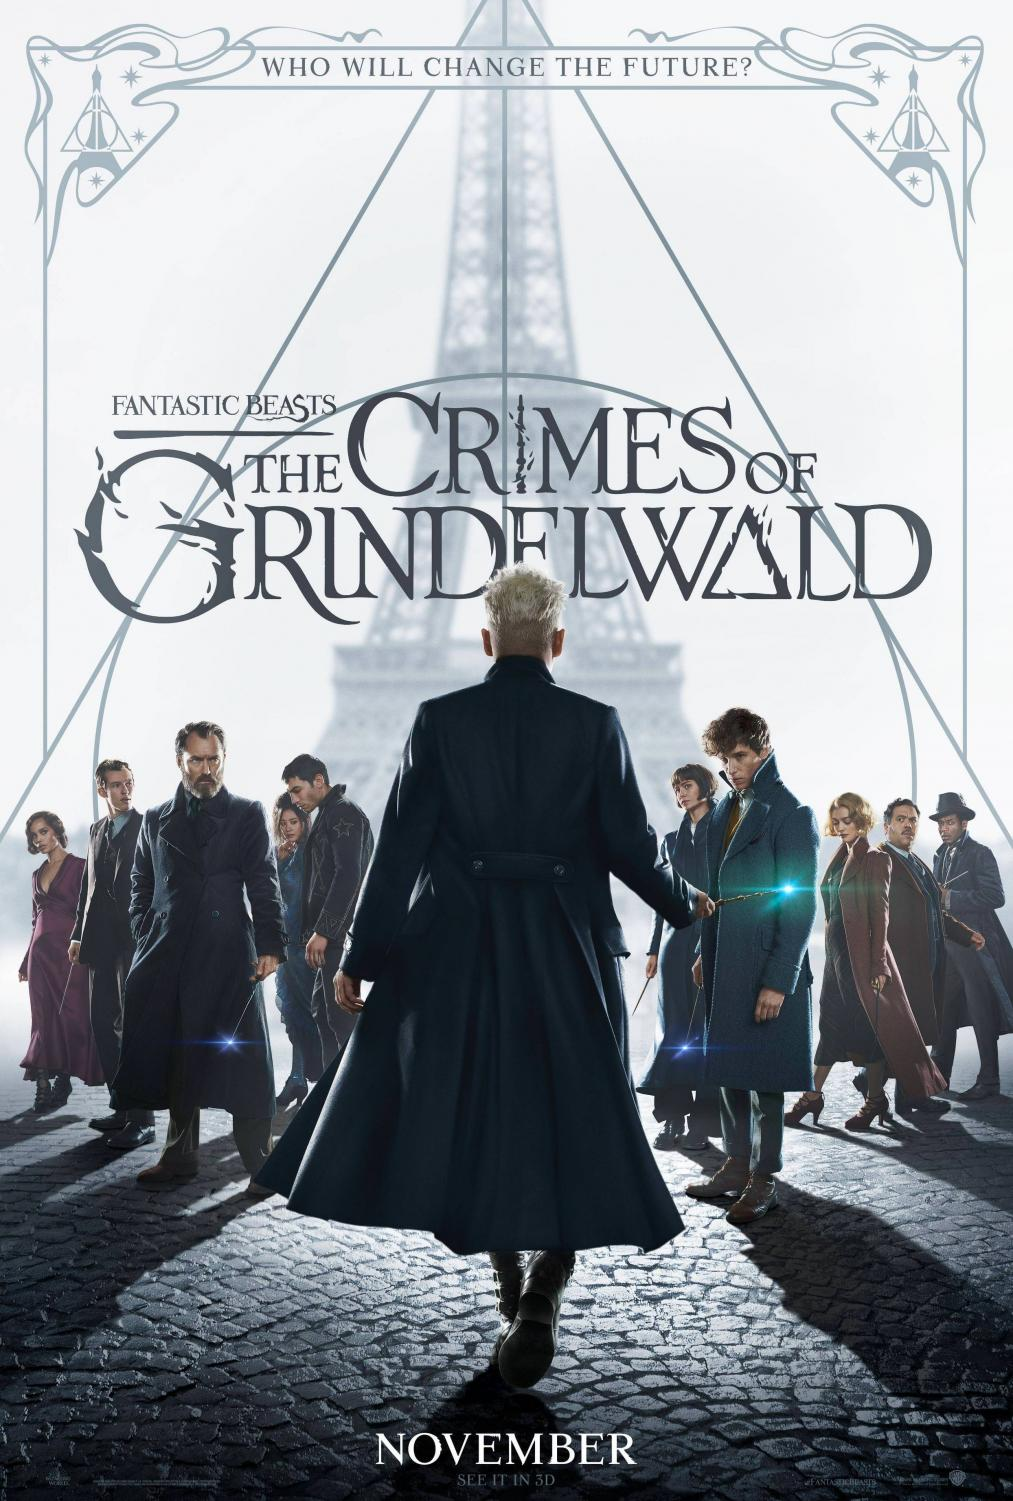 Crimes of Grindelwald movie poster. Photo taken without permission from The Tufts Daily.